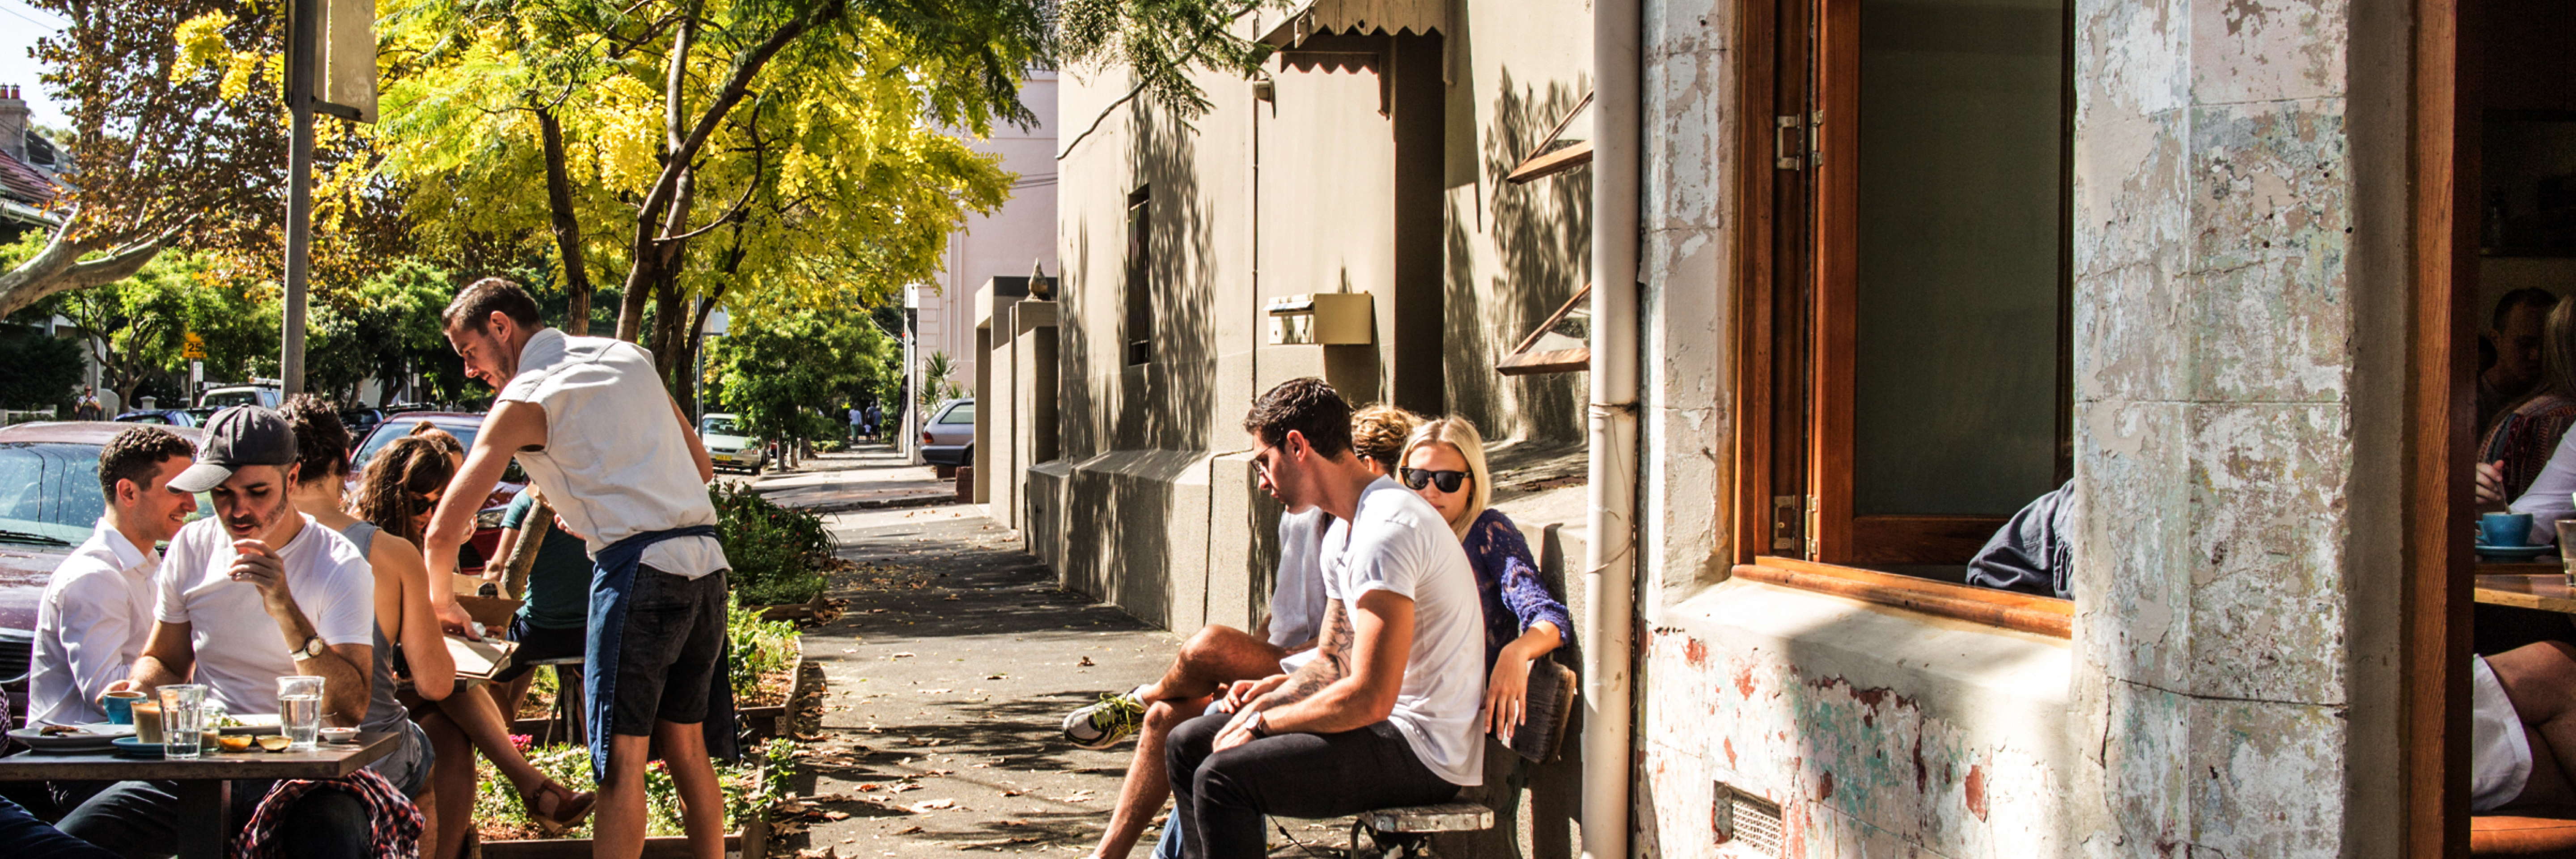 Things to Do in Surry Hills